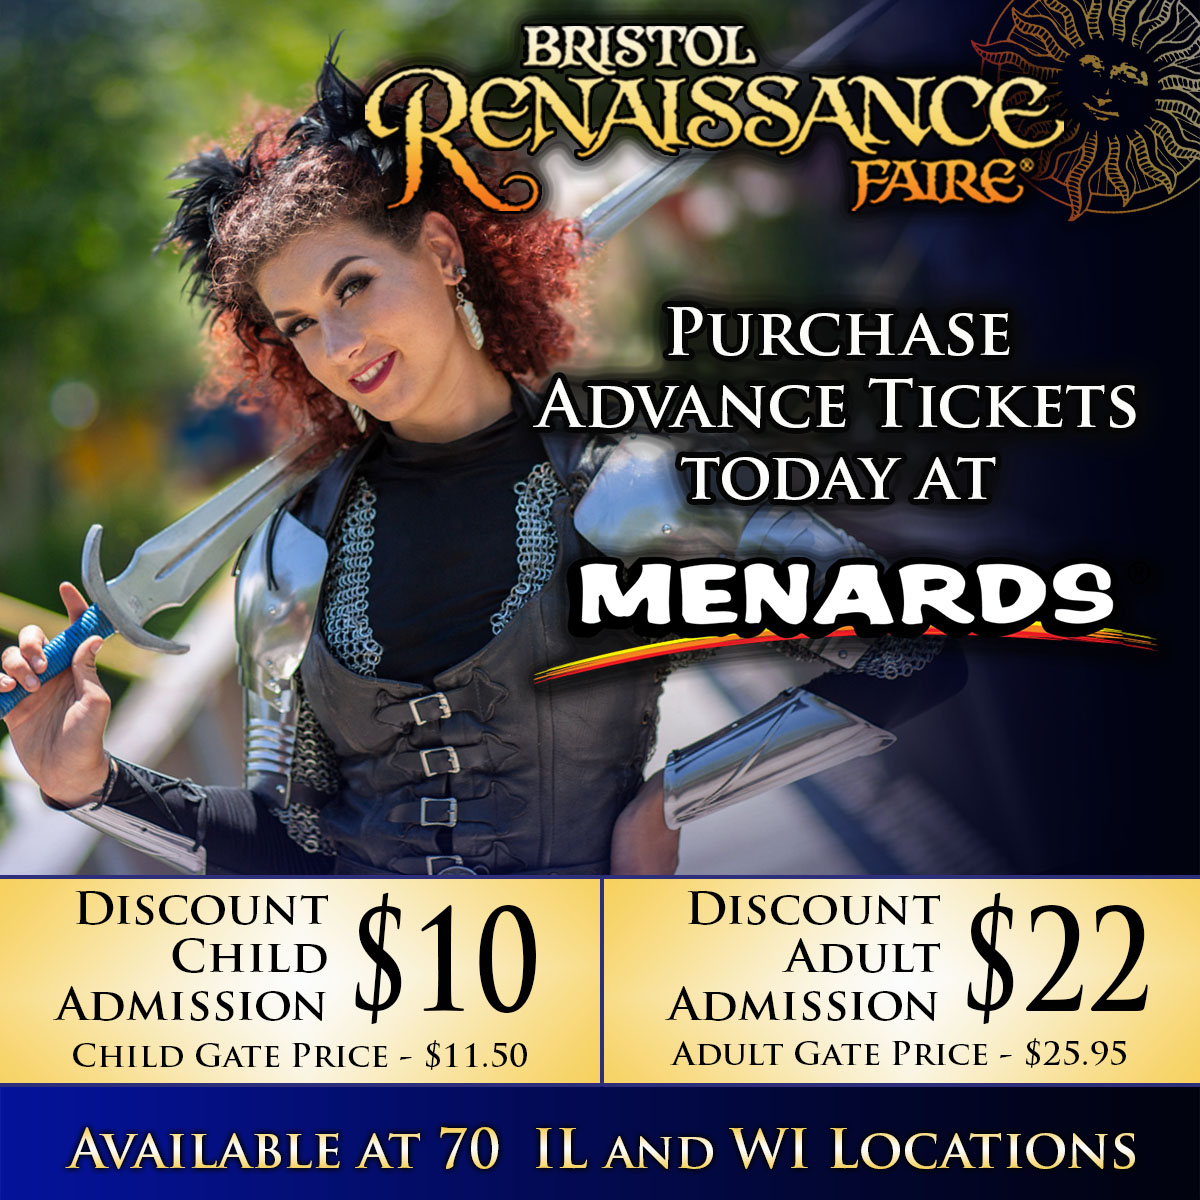 Discount tickets available at participating Menards locations